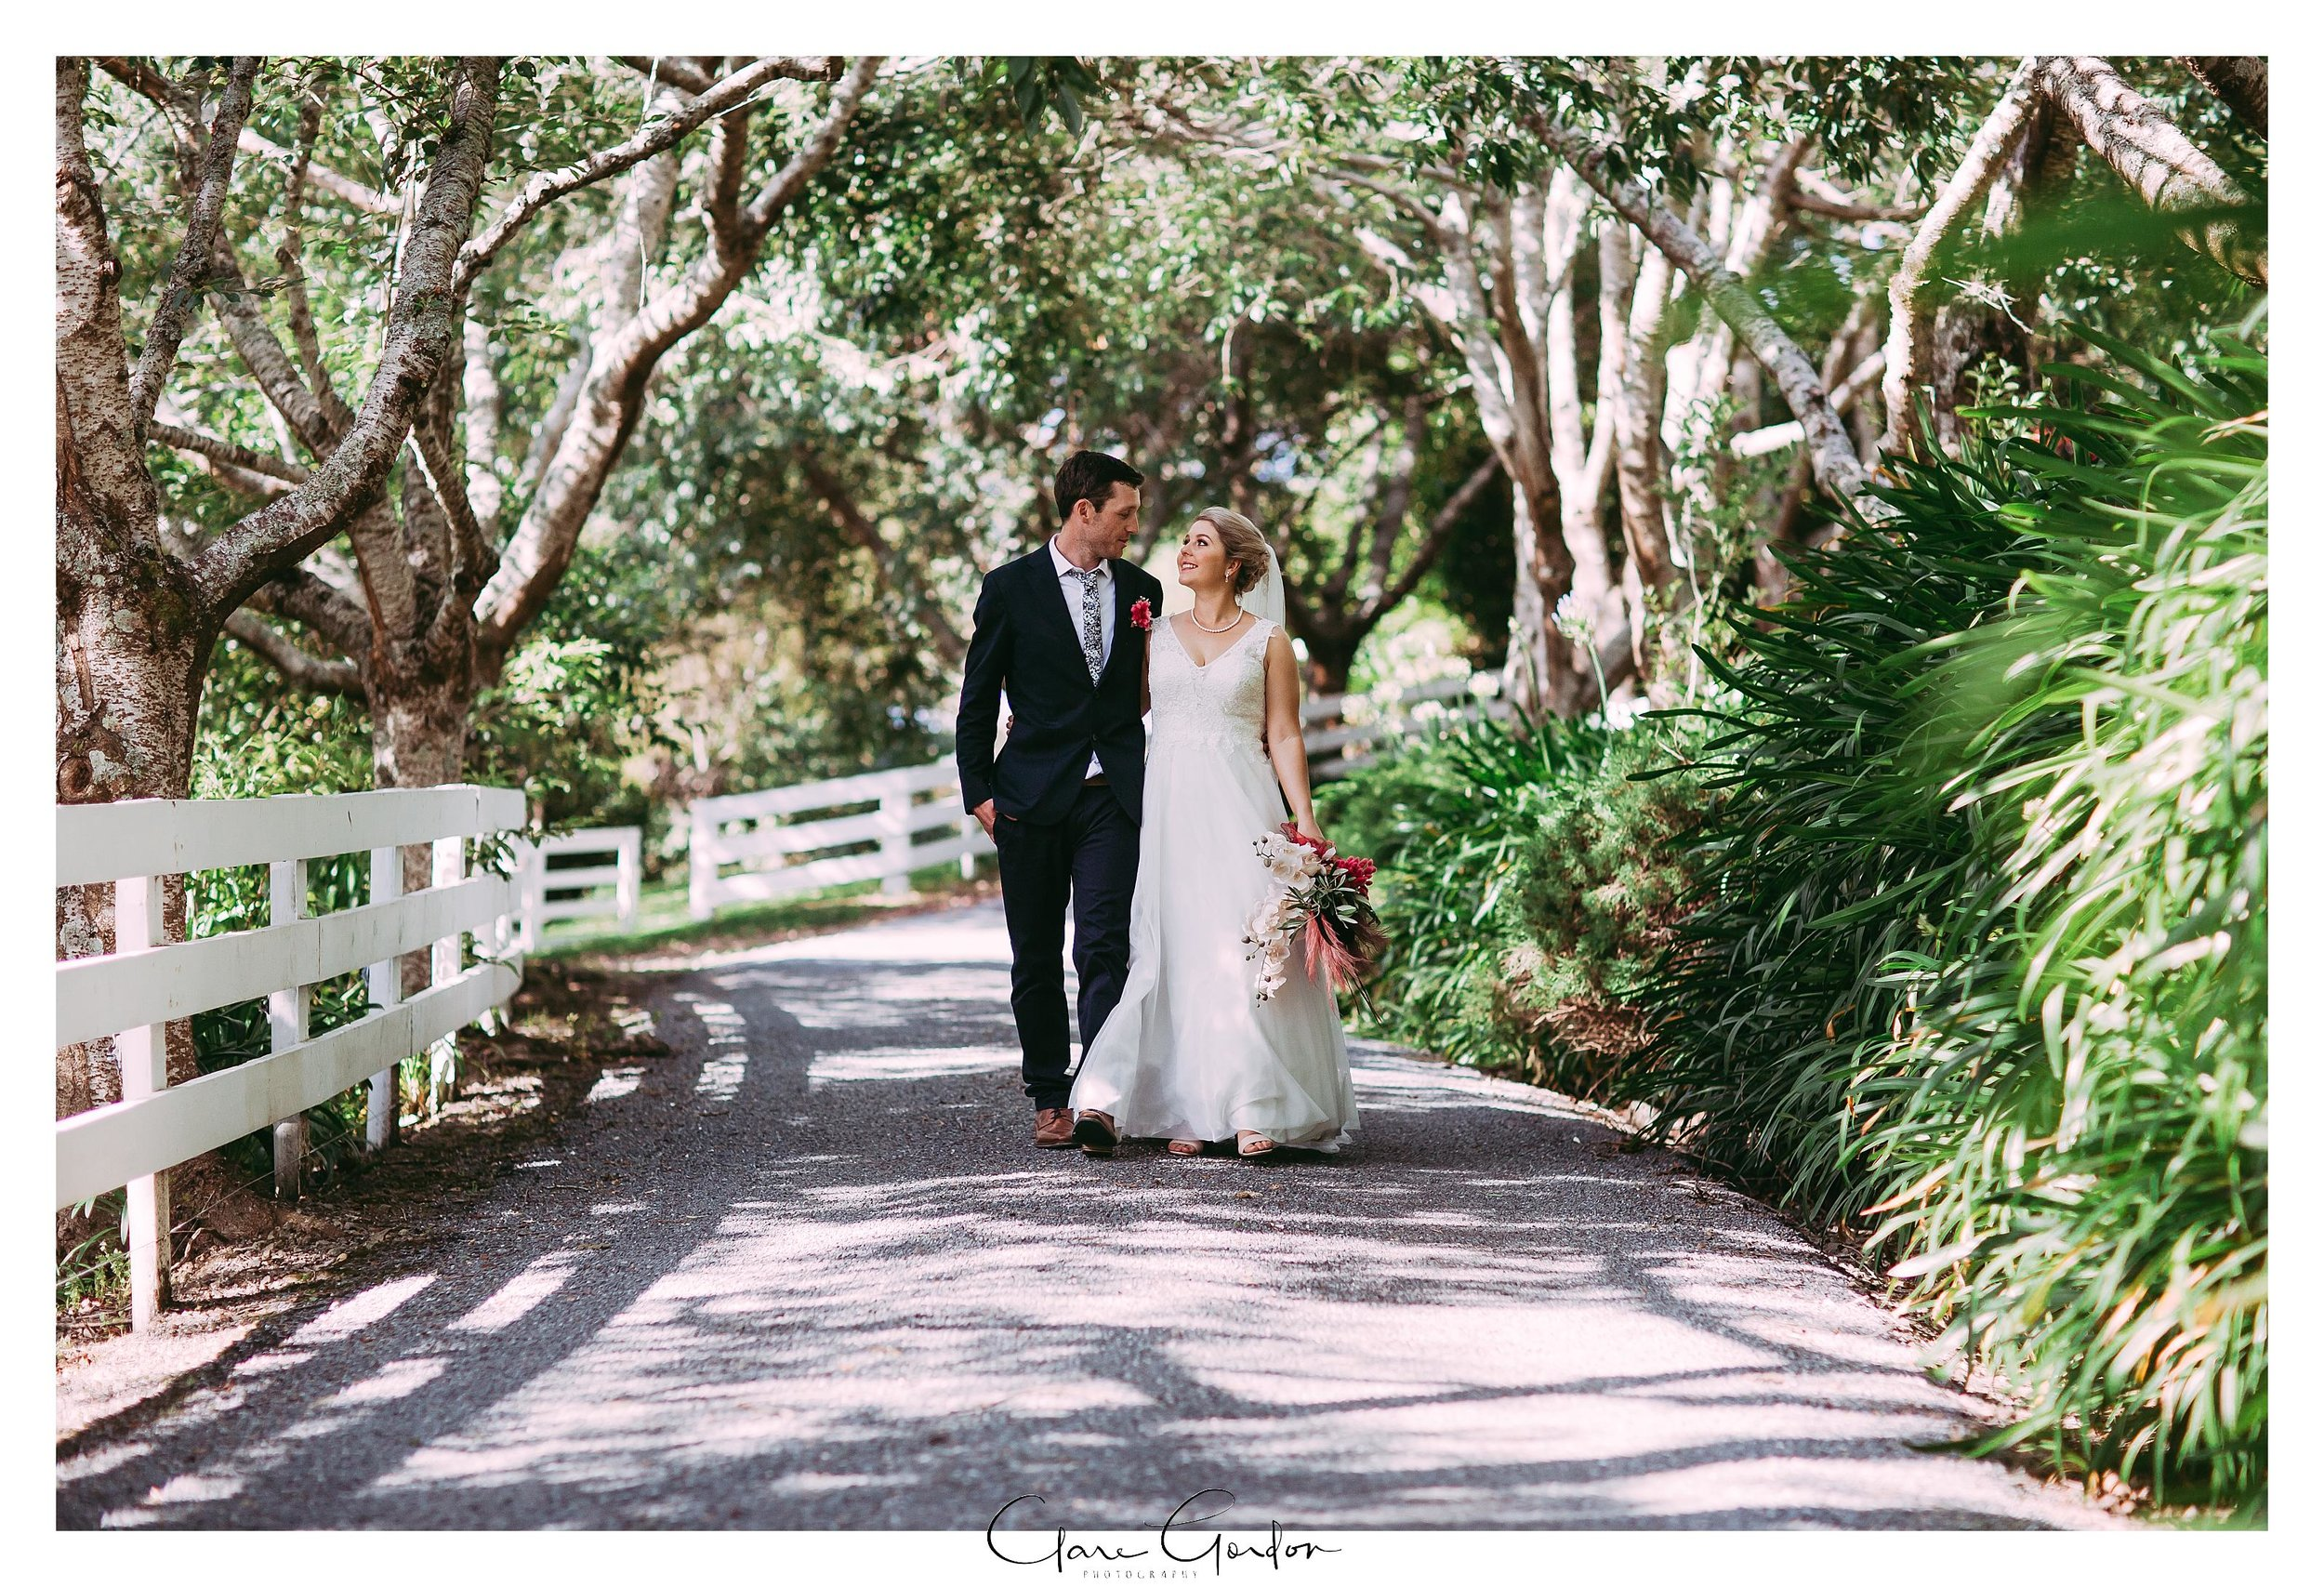 Charlemagne-Lodge-Tauranga-wedding-photo (101).jpg